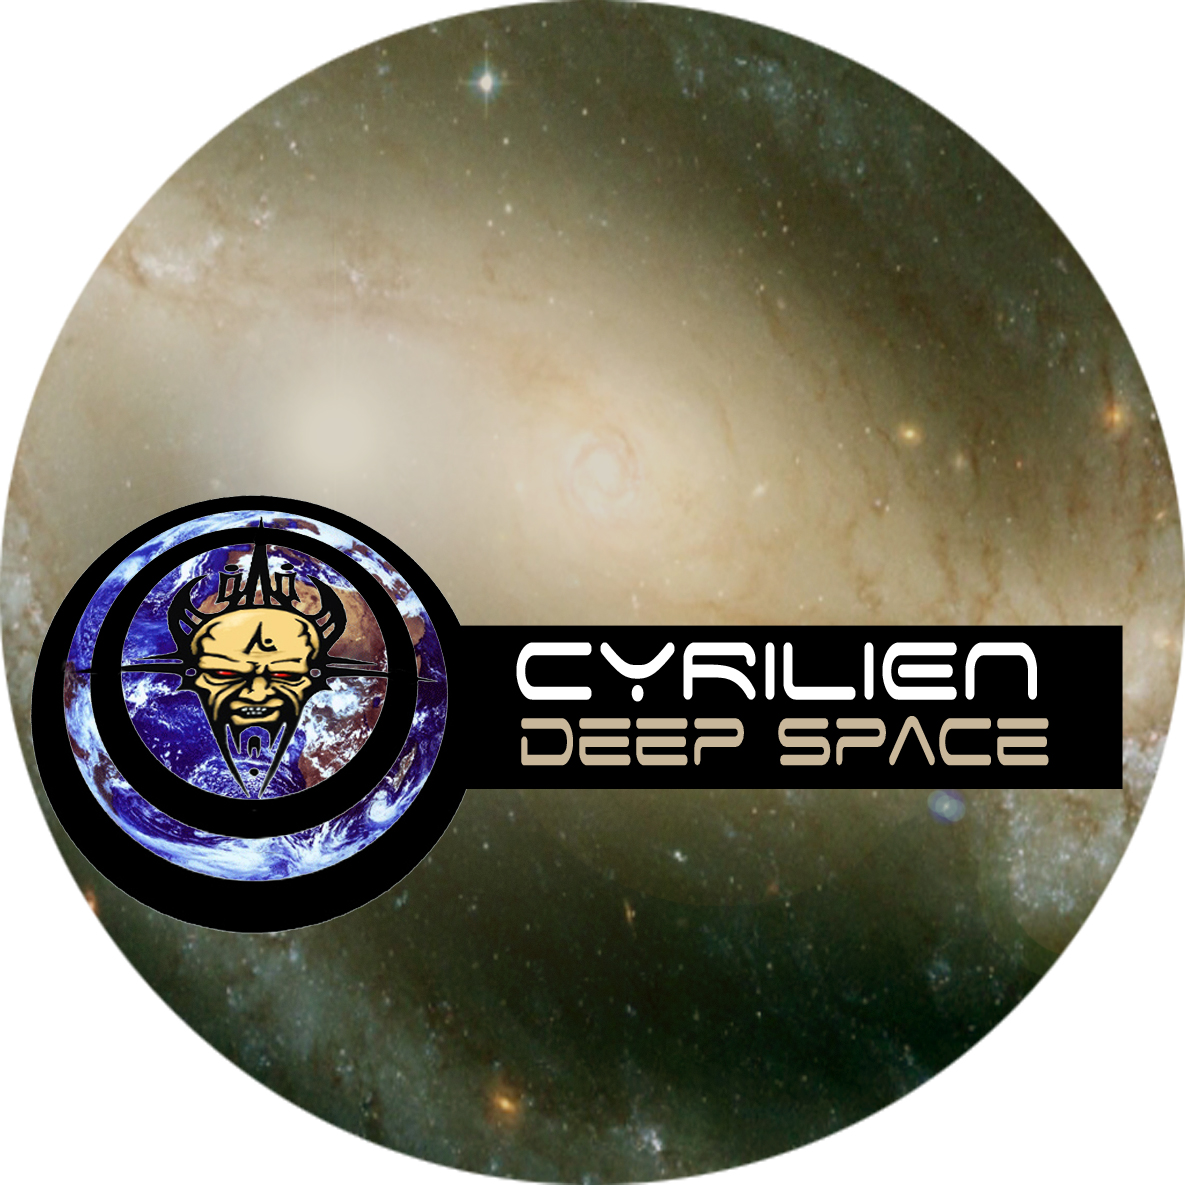 MP3CCREATDF005 - CORE CREATOR DIGIFILES - CYRILIEN - Deep Space